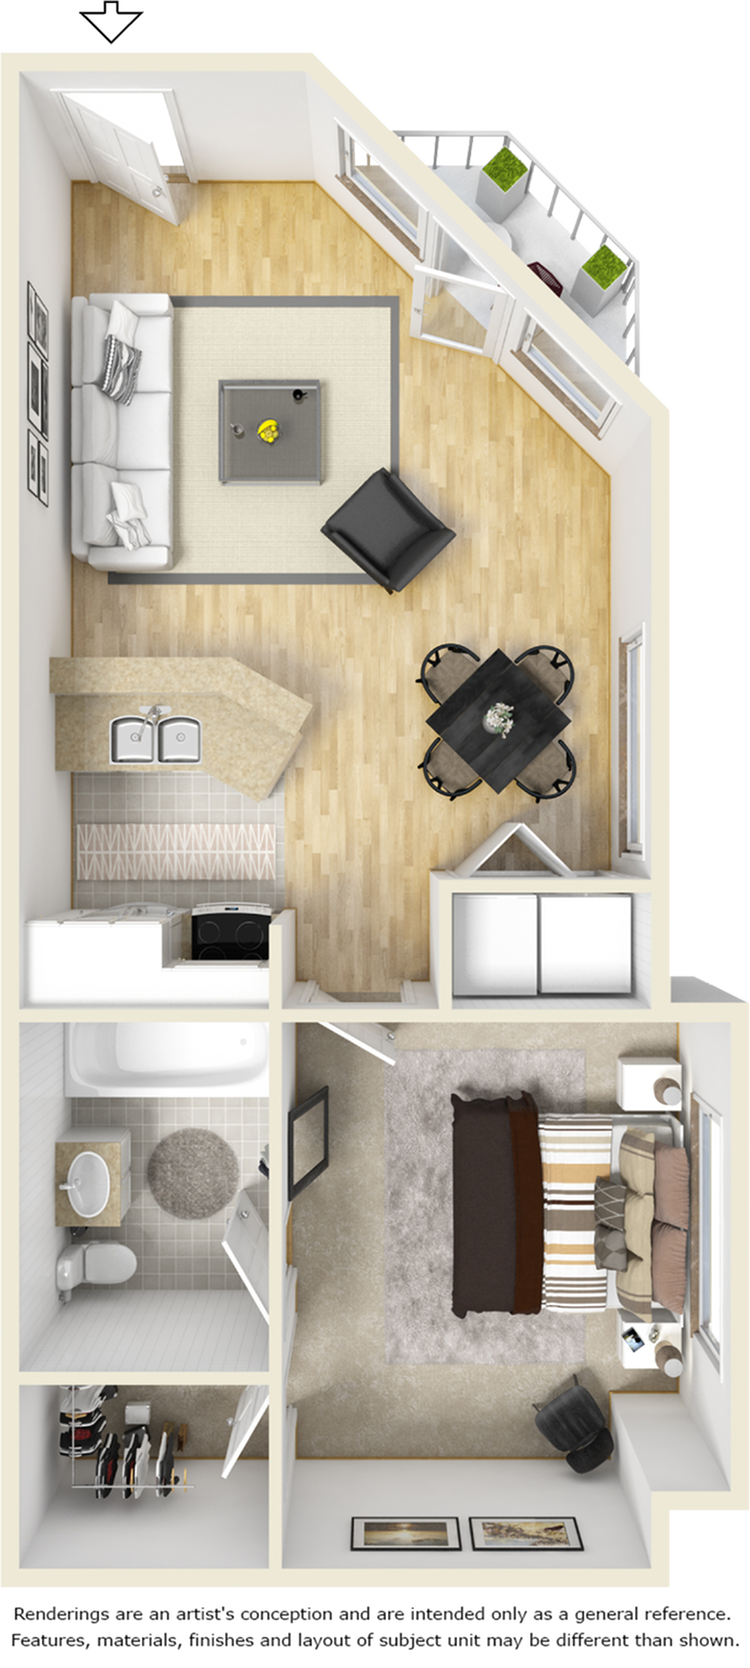 Brighton 1 bedroom 1 bathroom floor plan